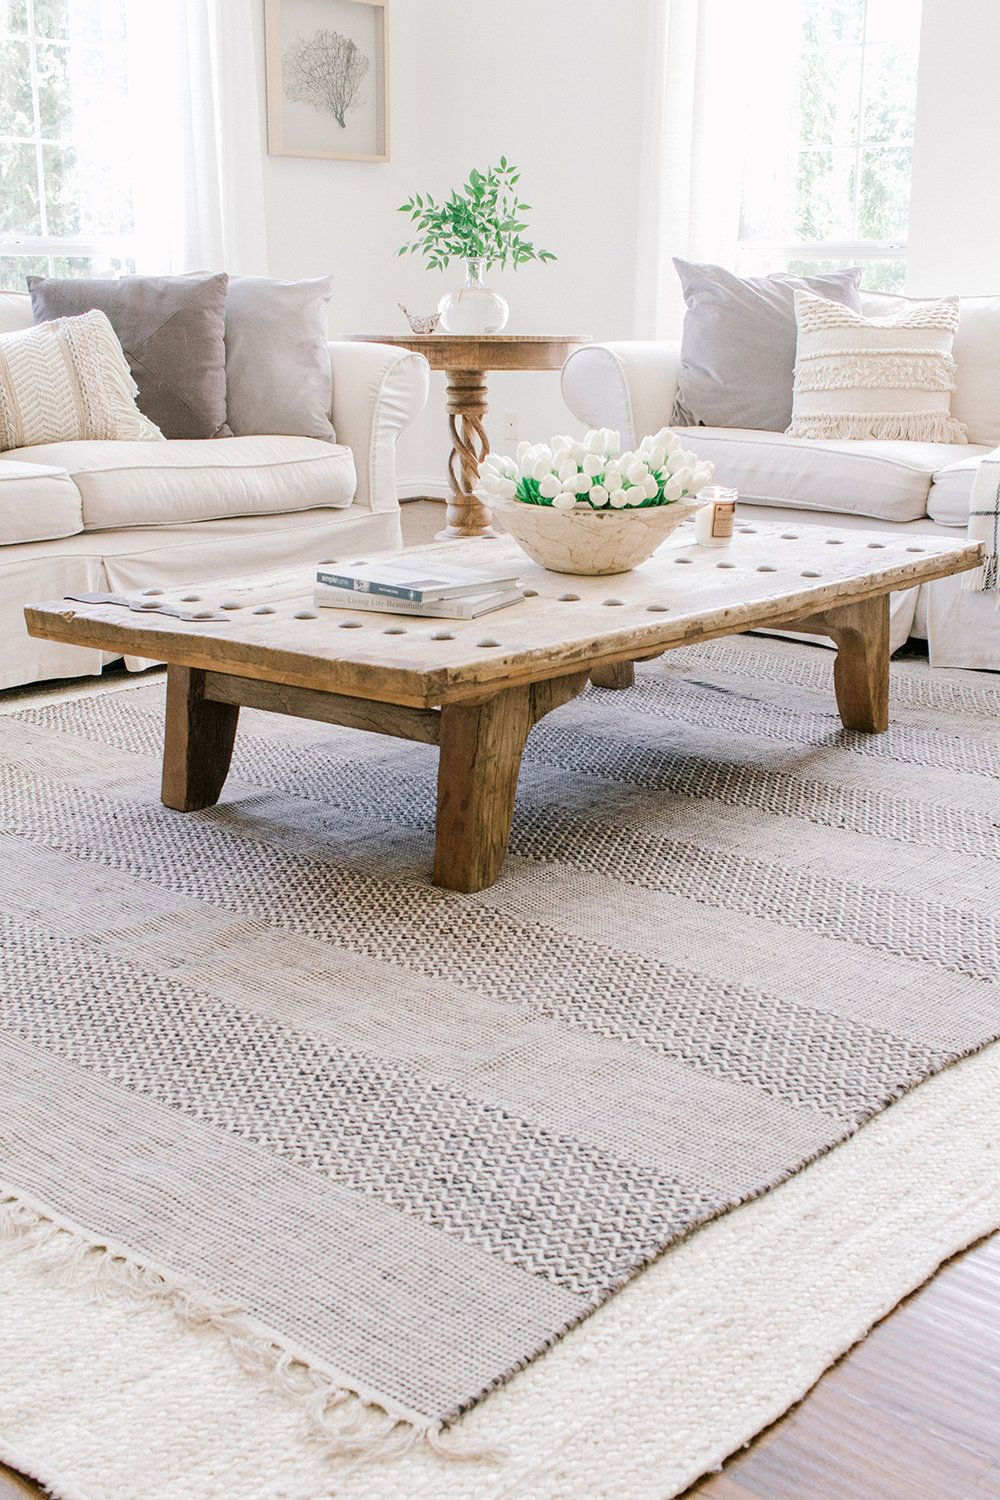 Coastal Farmhouse Living Room Reveal Farmhouse Living Farmhouse Rugs Living Room Trending Decor Rugs In Living Room